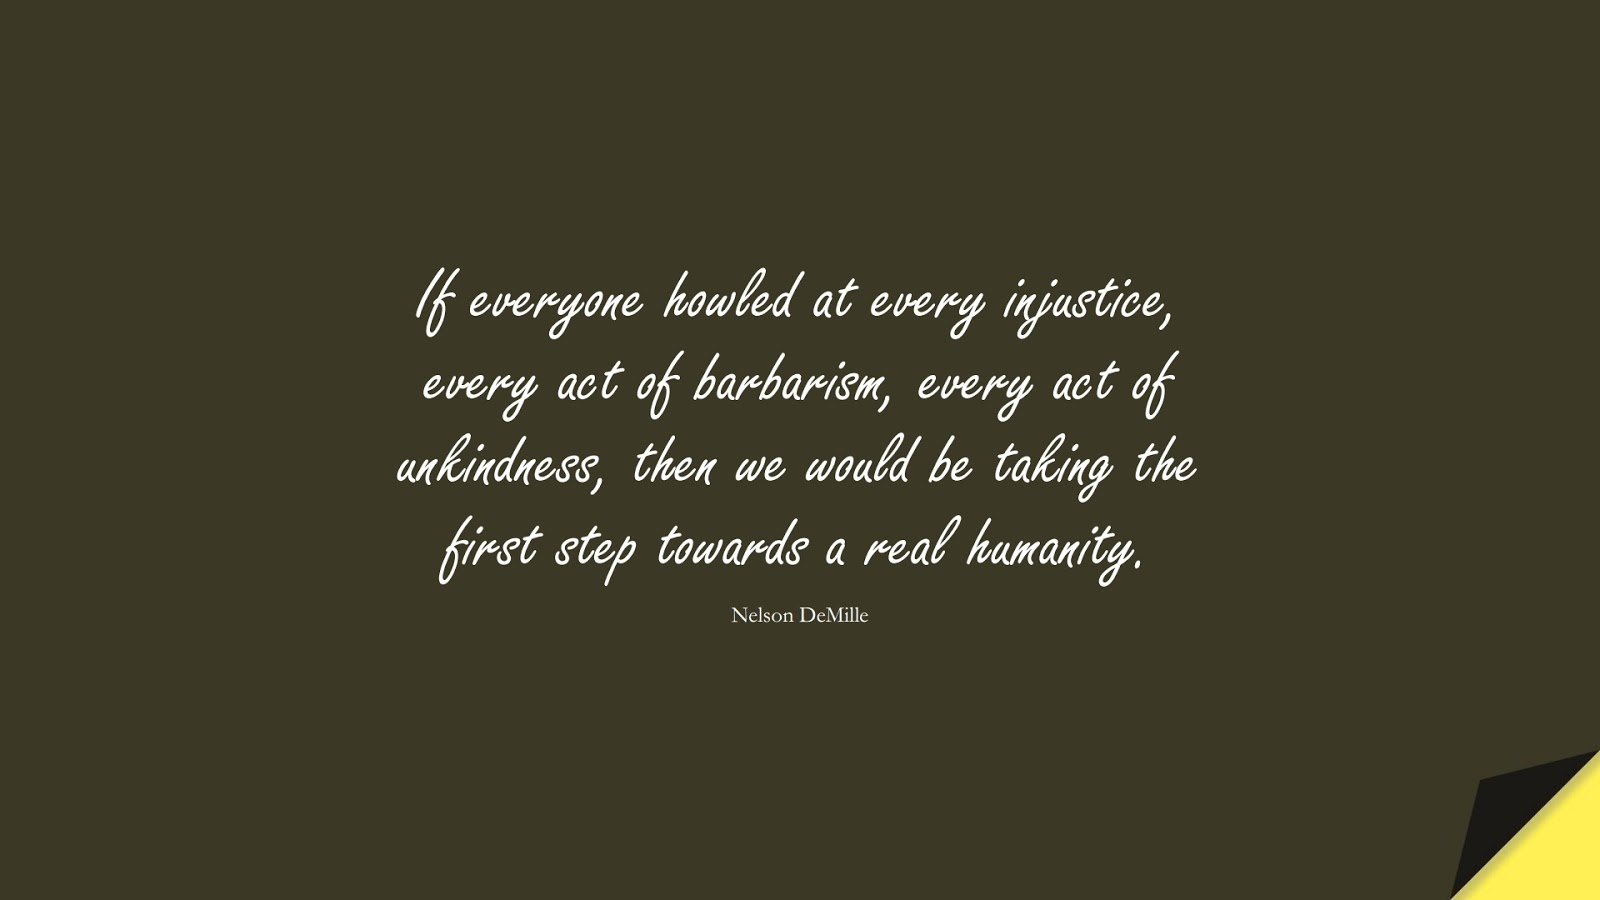 If everyone howled at every injustice, every act of barbarism, every act of unkindness, then we would be taking the first step towards a real humanity. (Nelson DeMille);  #HumanityQuotes